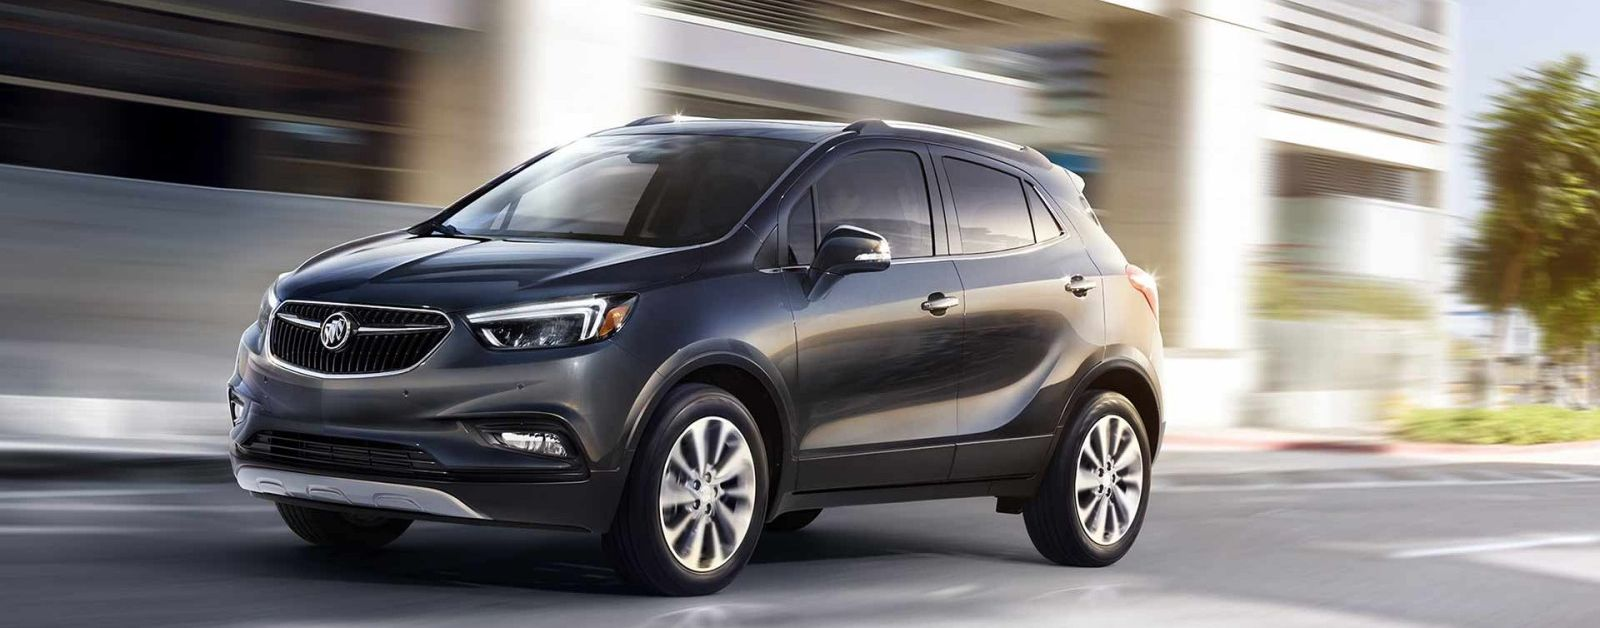 Used Buick Vehicles For Sale In Augusta Ga Gerald Jones Auto Group